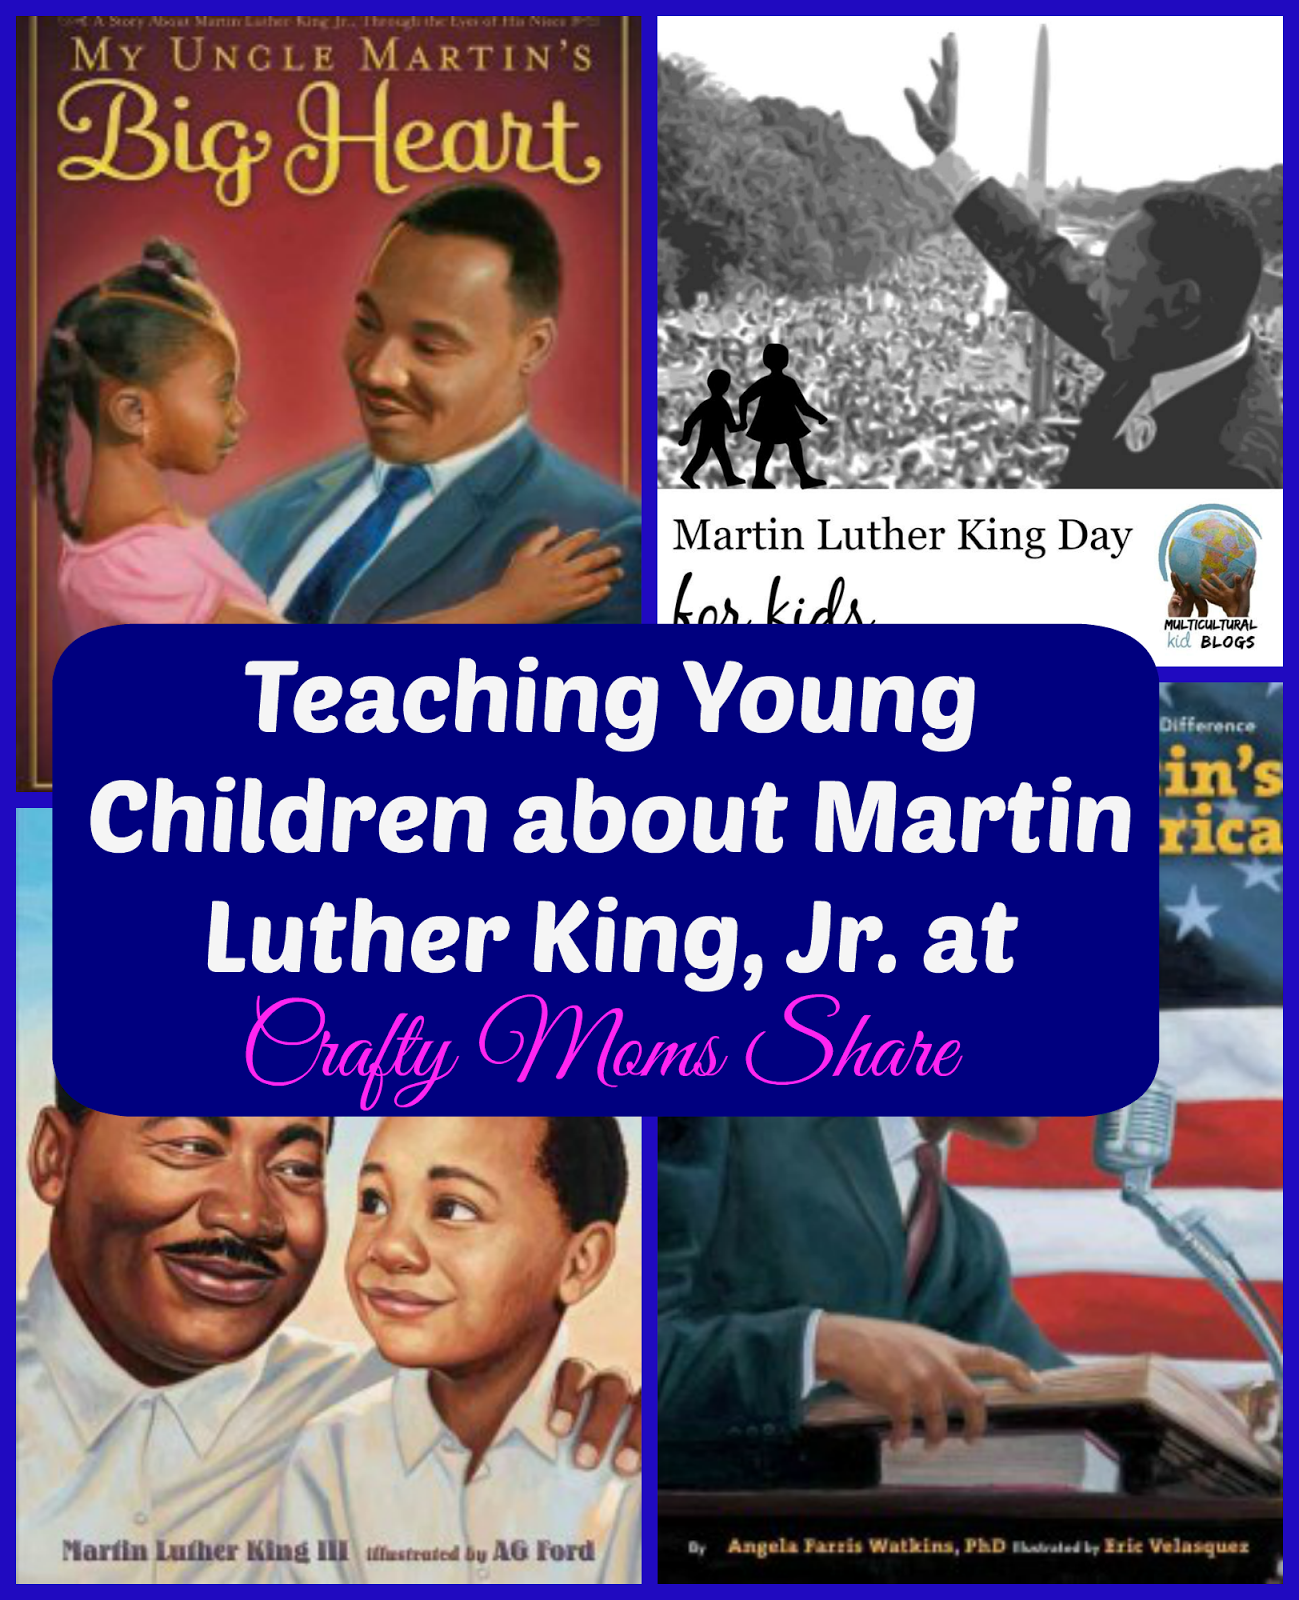 a biography of martin luther king jr born in atlanta georgia King received a doctorate degree in theology and in 1955 on january 15, 1929, martin luther king jr is born in atlanta, georgia, the son of a baptist minister this website uses cookies for.